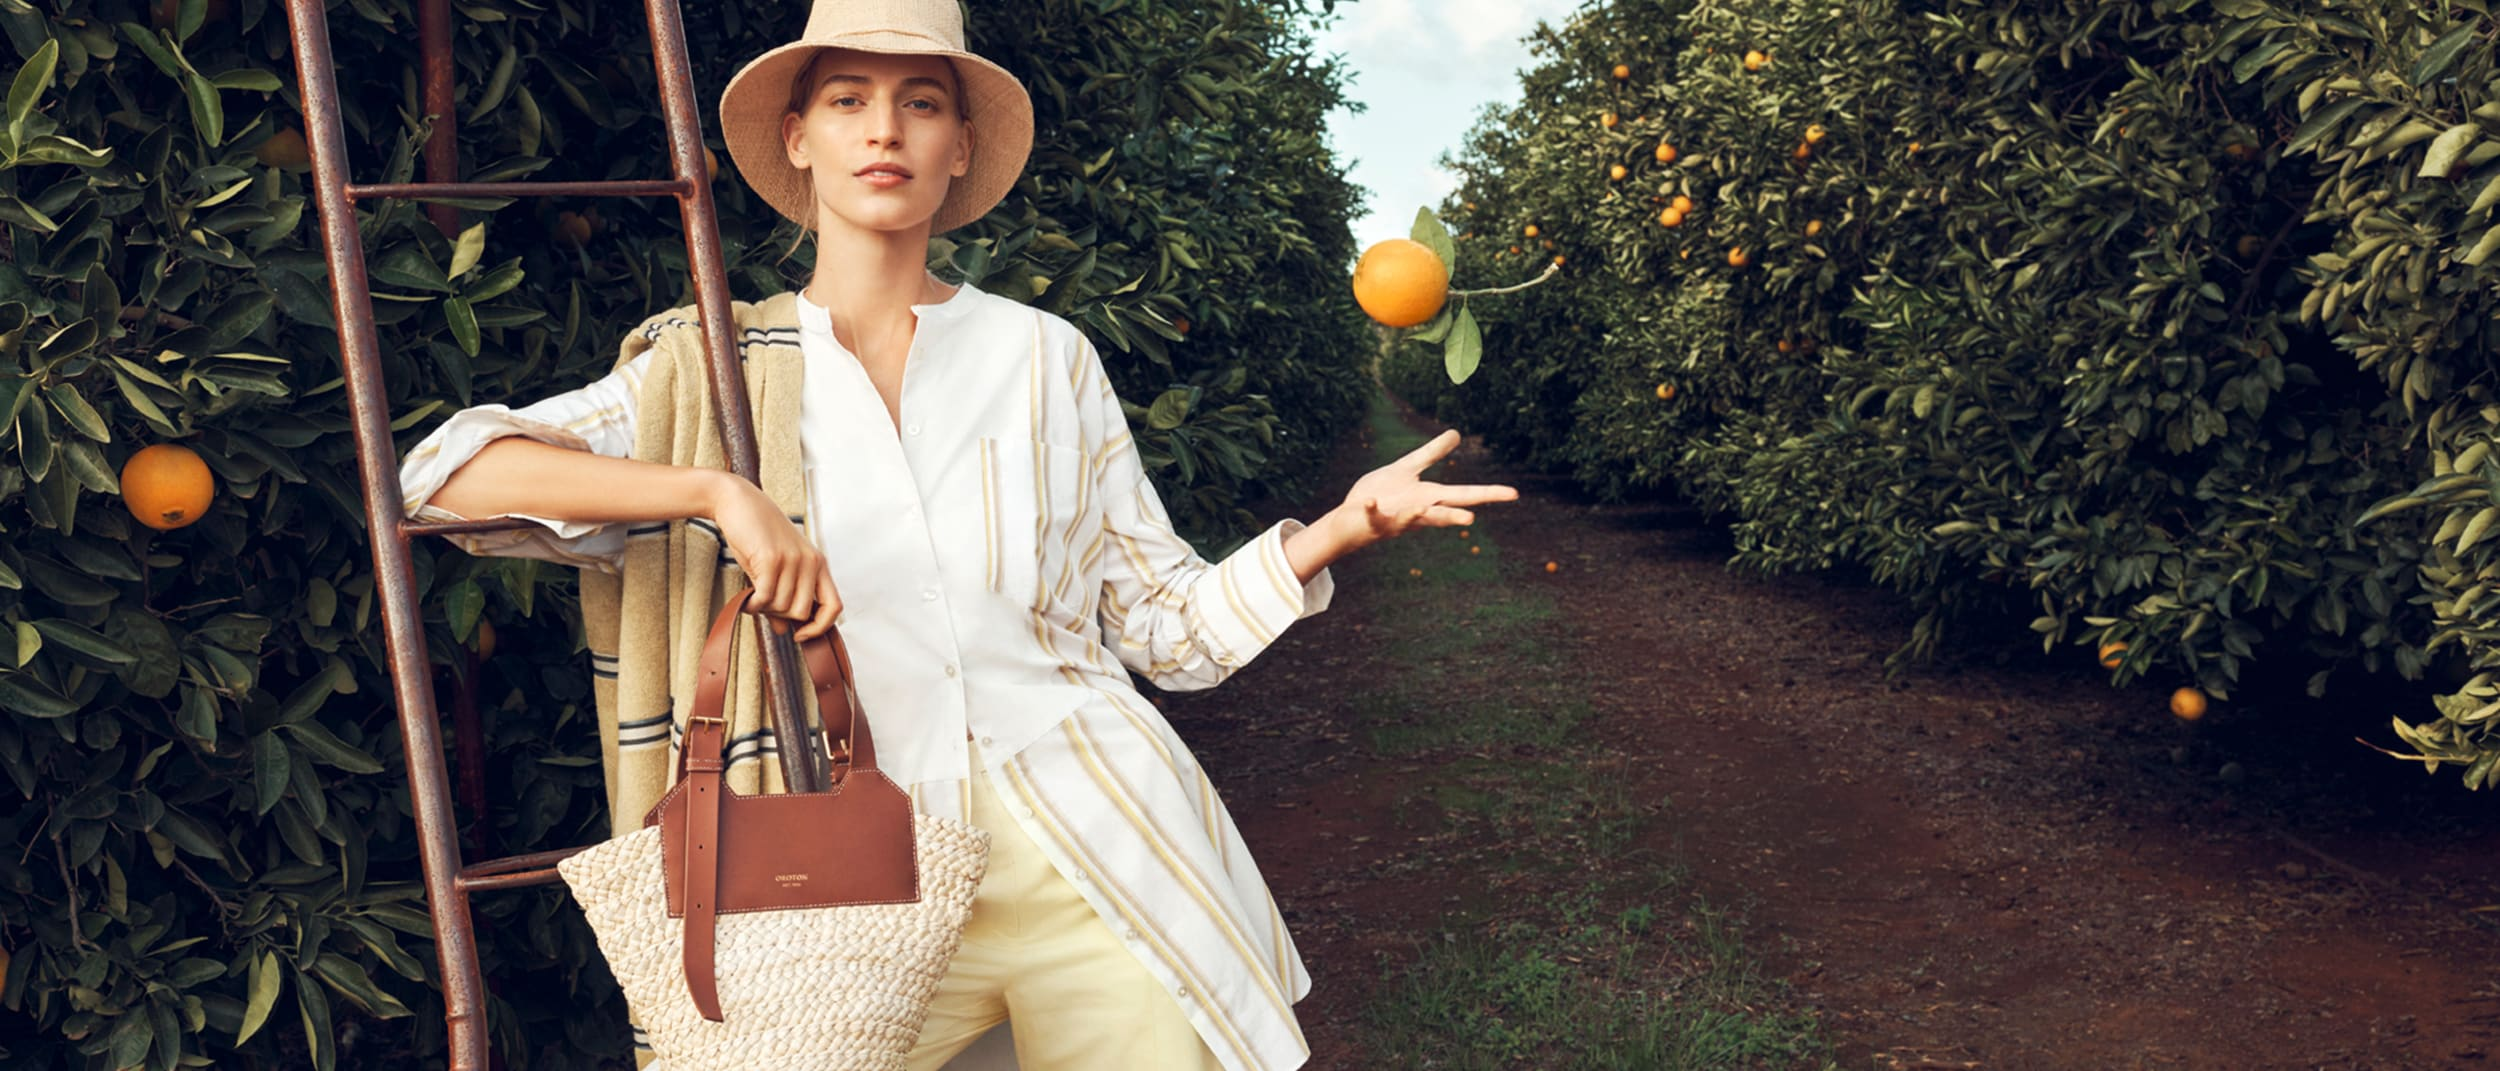 Oroton: Introducing 'The Orchard' collection